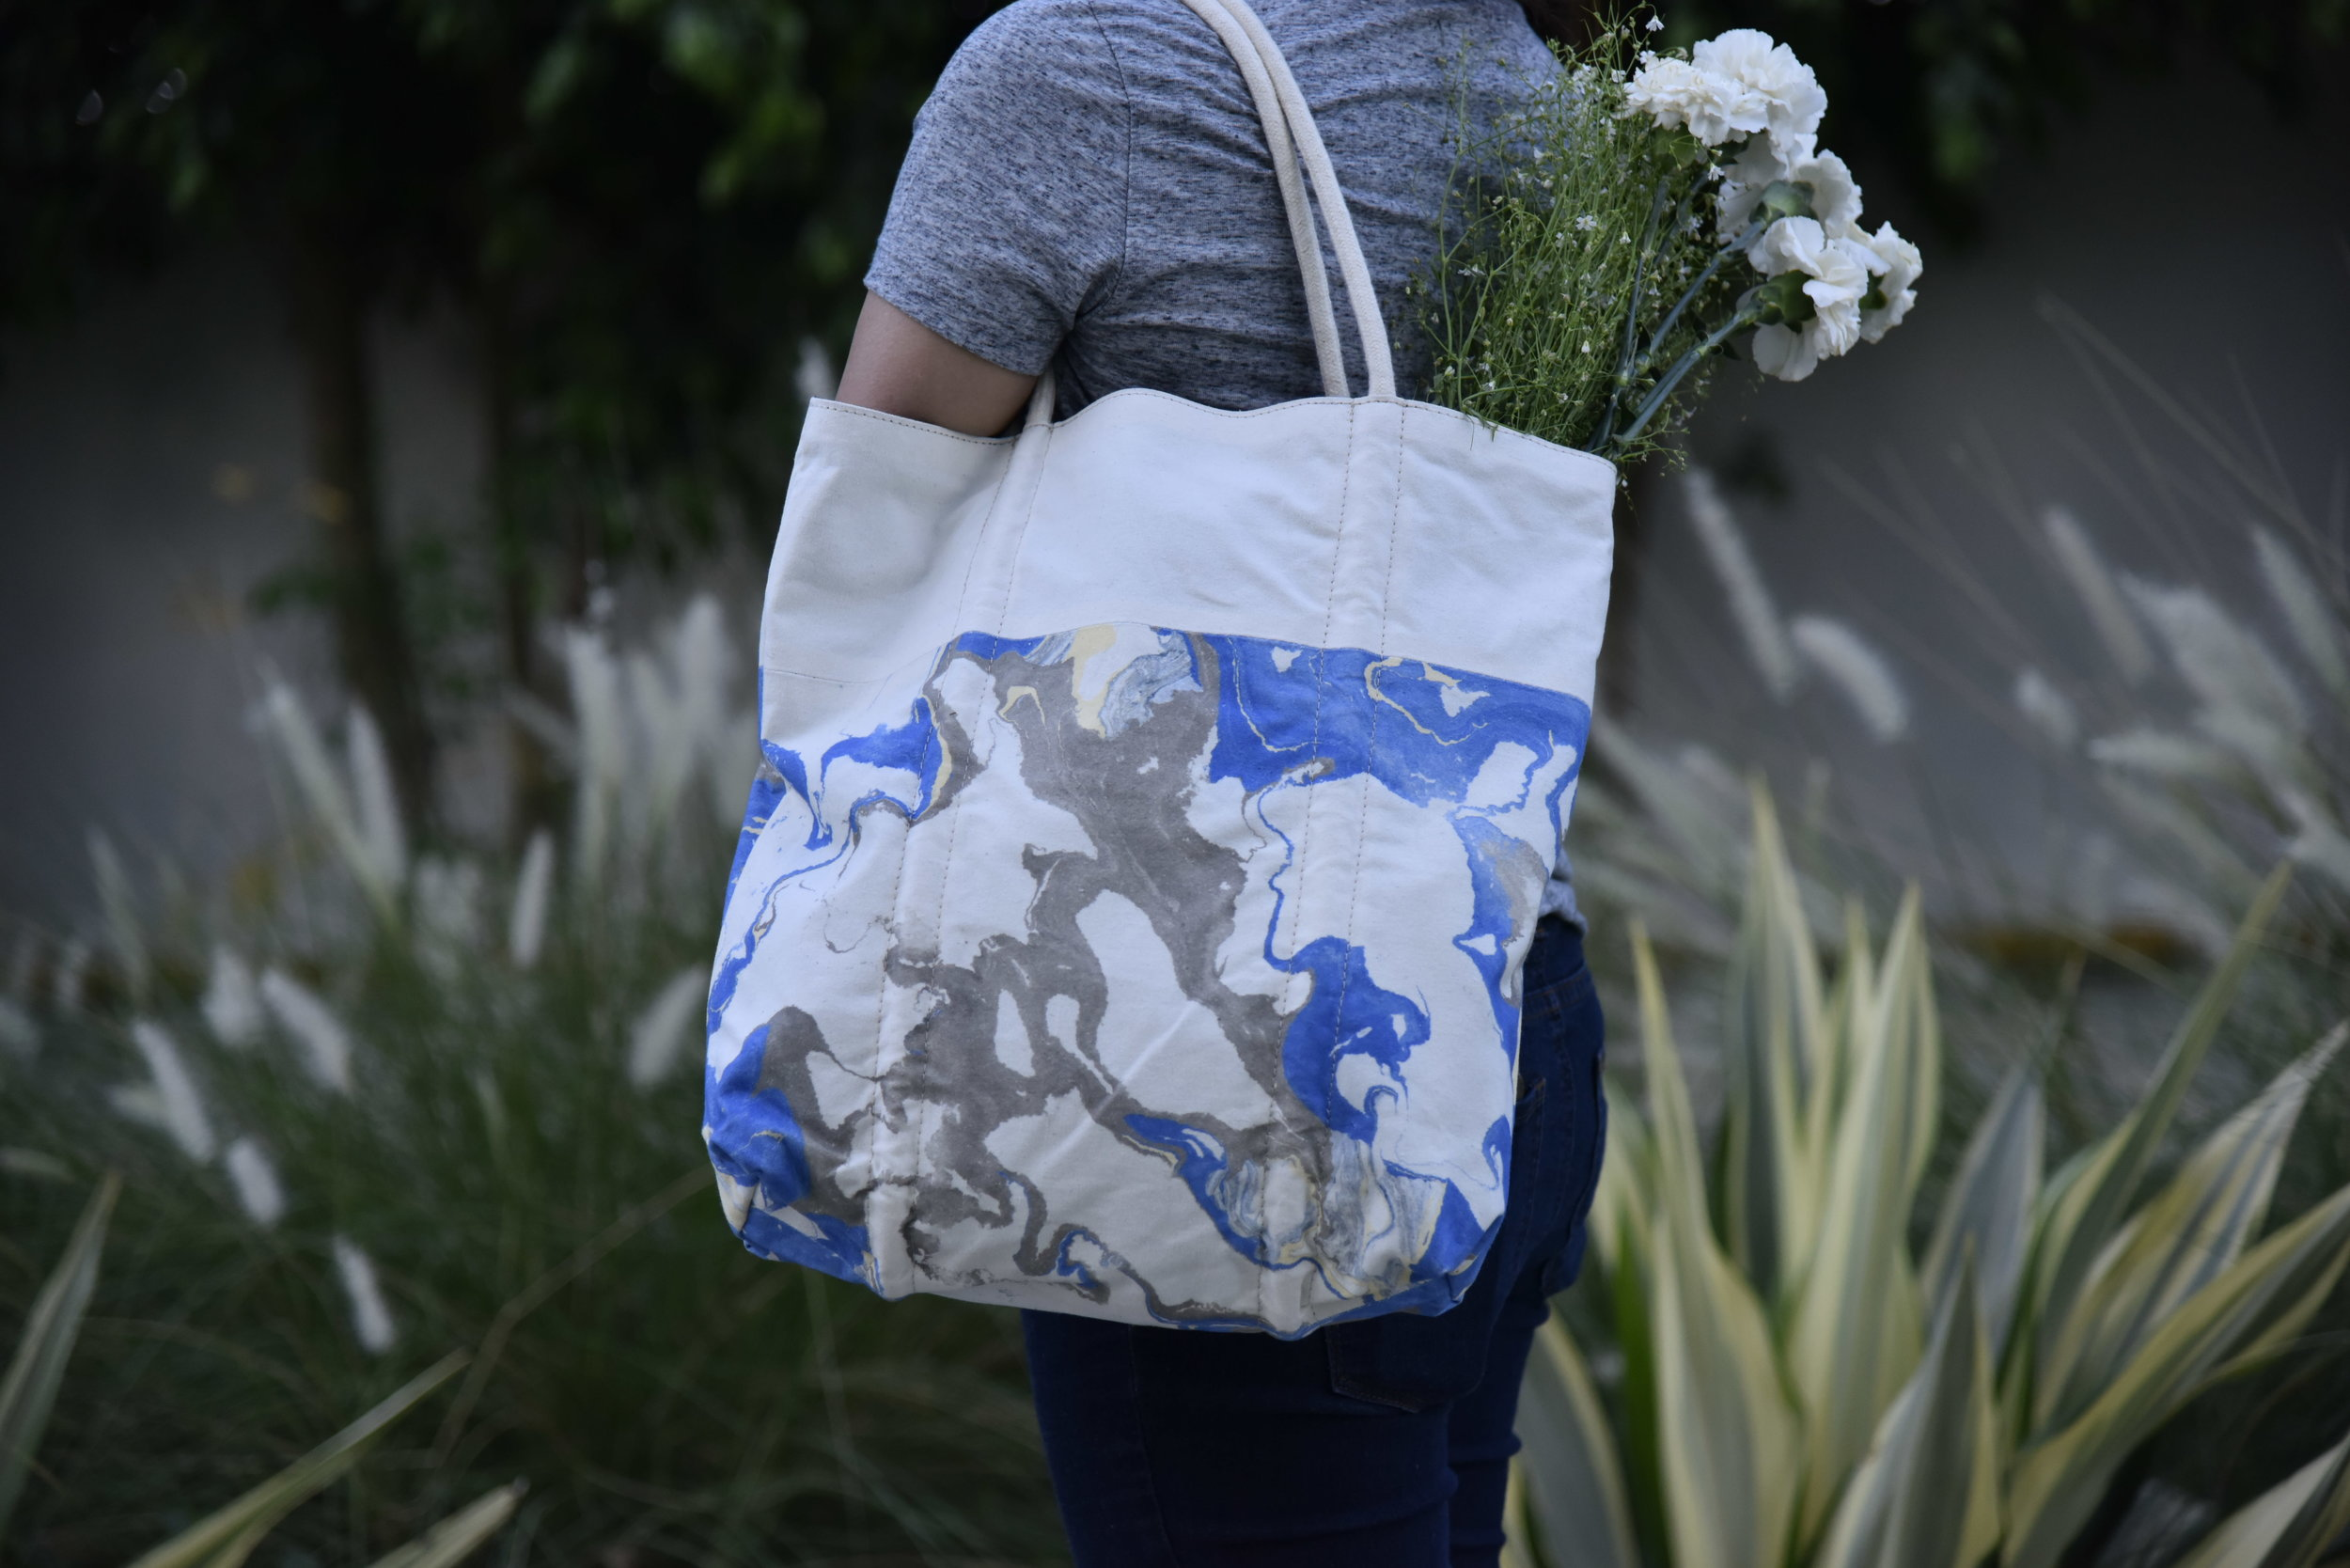 We work with master marbling artisans in Jaipur to create totes, pouches, bags and garments. To know more please write to us at aashapuraoverseas@gmail.com